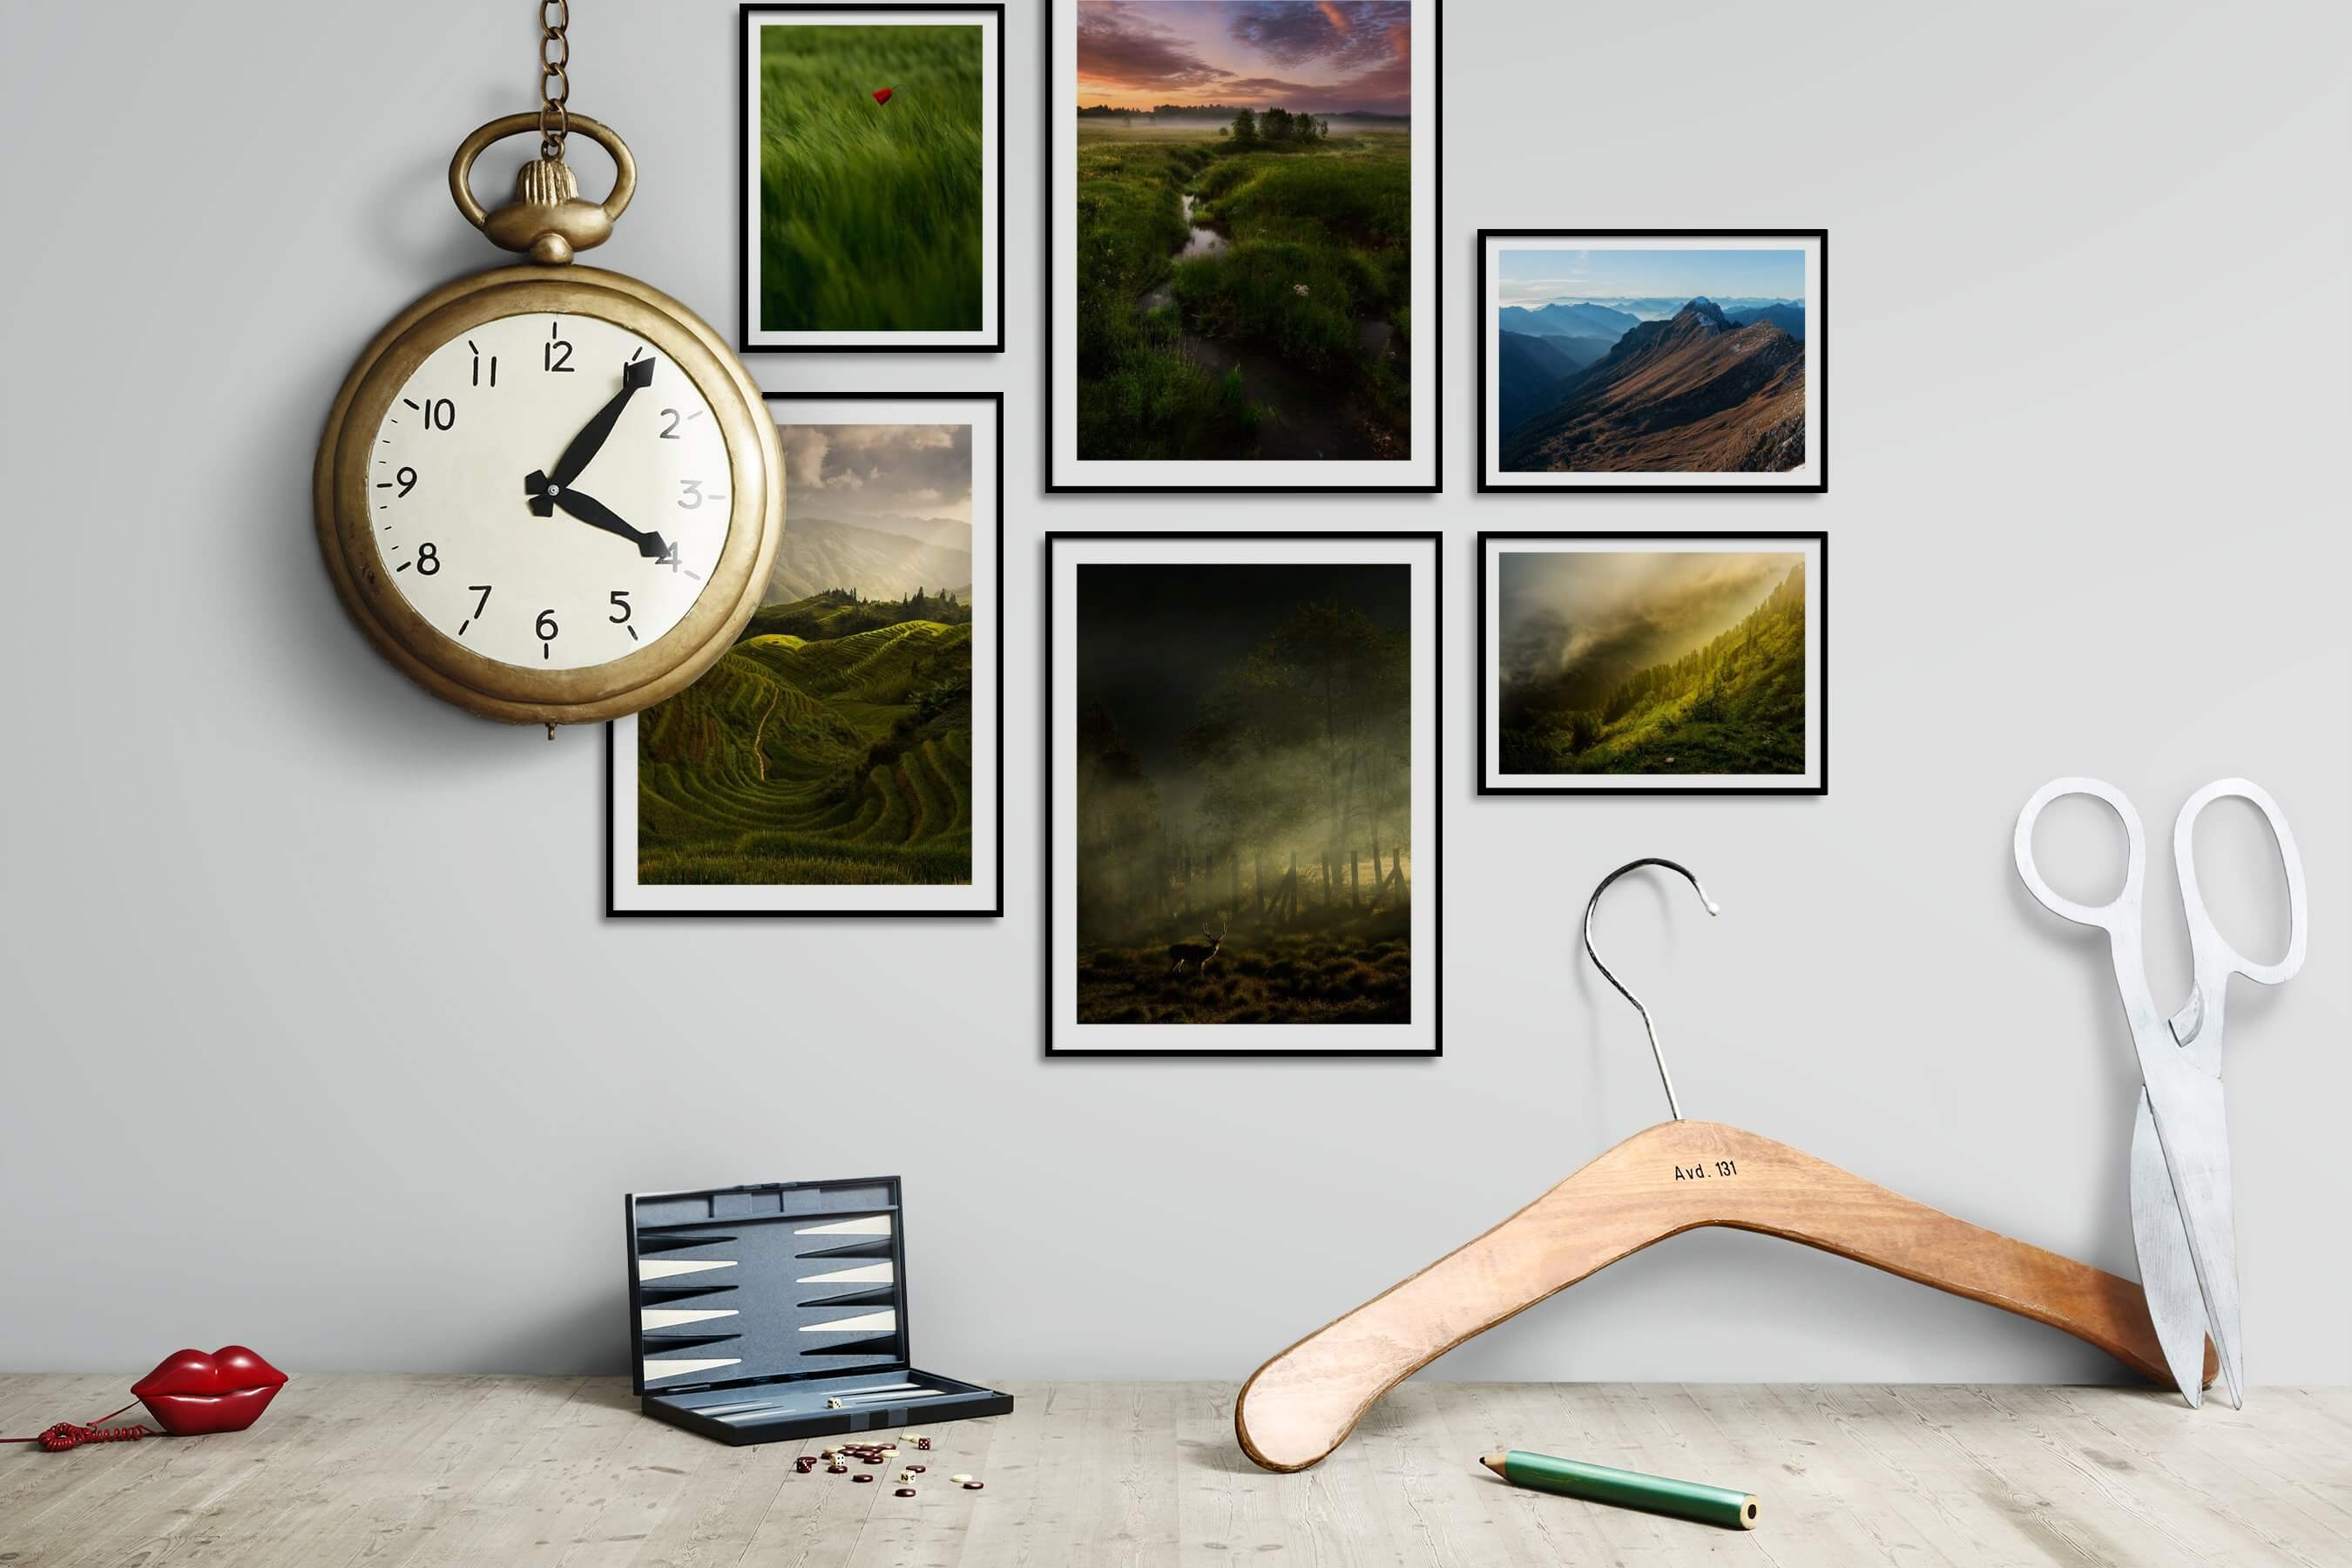 Gallery wall idea with six framed pictures arranged on a wall depicting For the Minimalist, Flowers & Plants, Country Life, Nature, and Animals